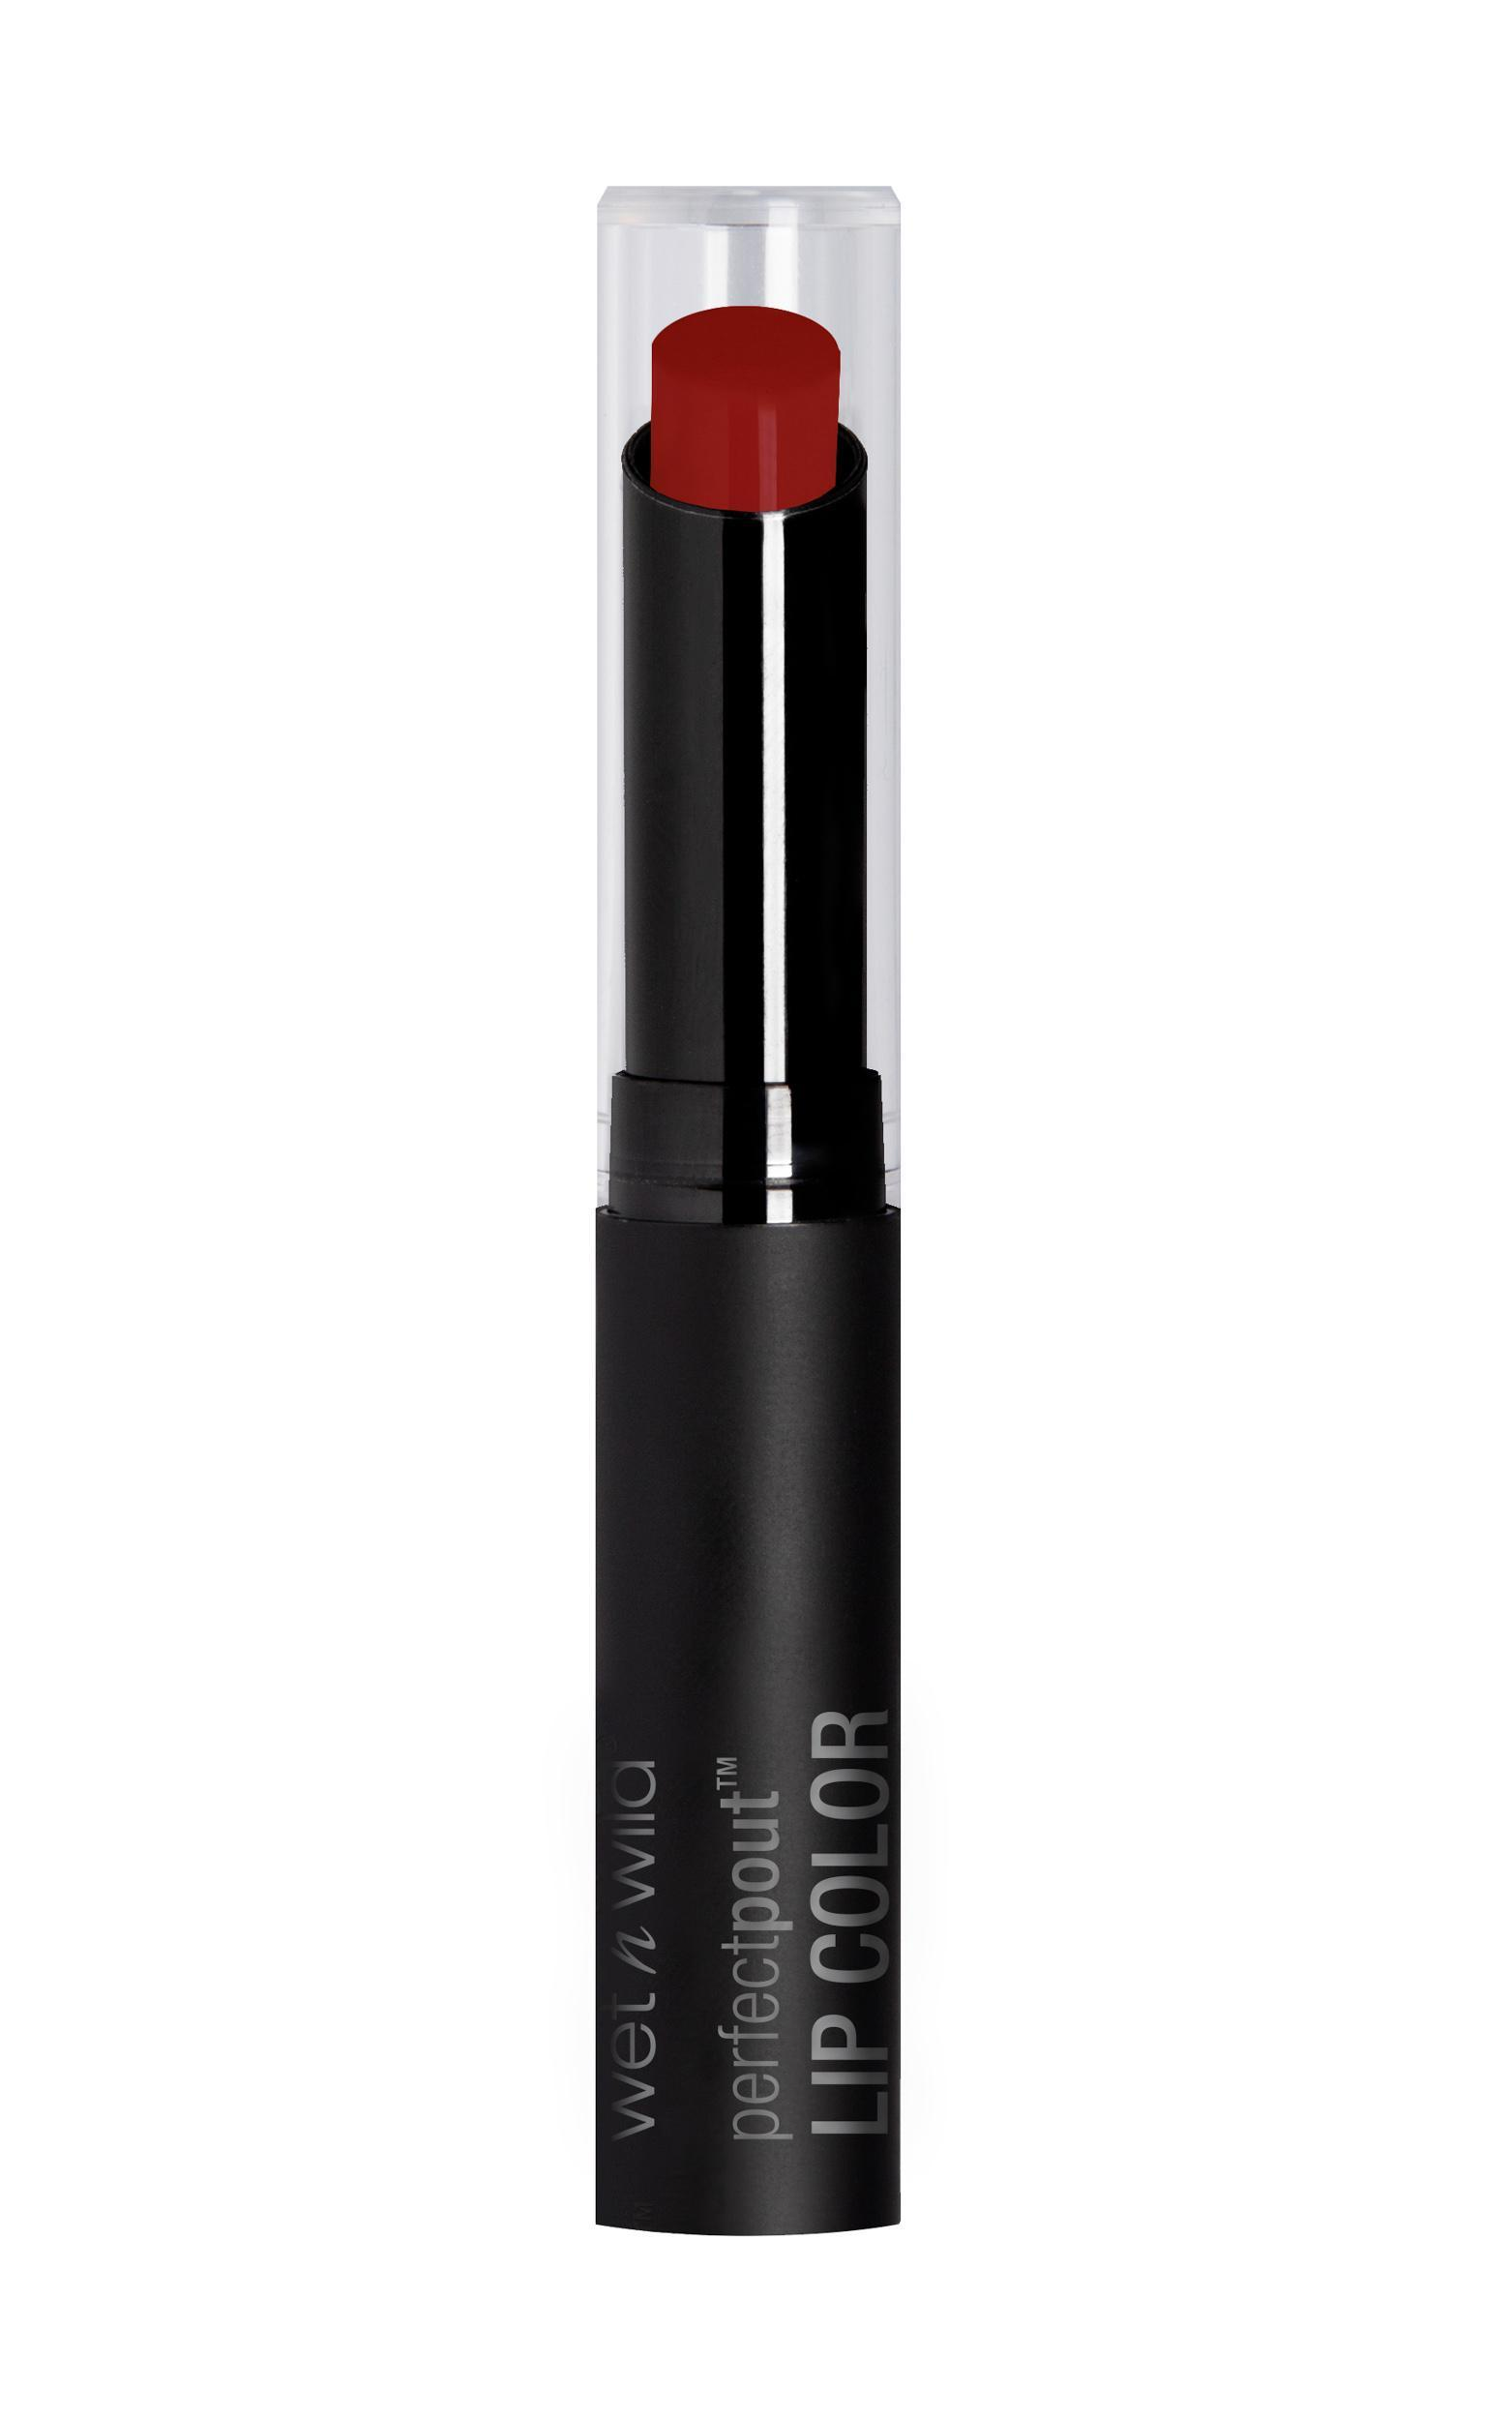 Wet N Wild - Perfect Pout Lip Color in Club Brat , Red, hi-res image number null